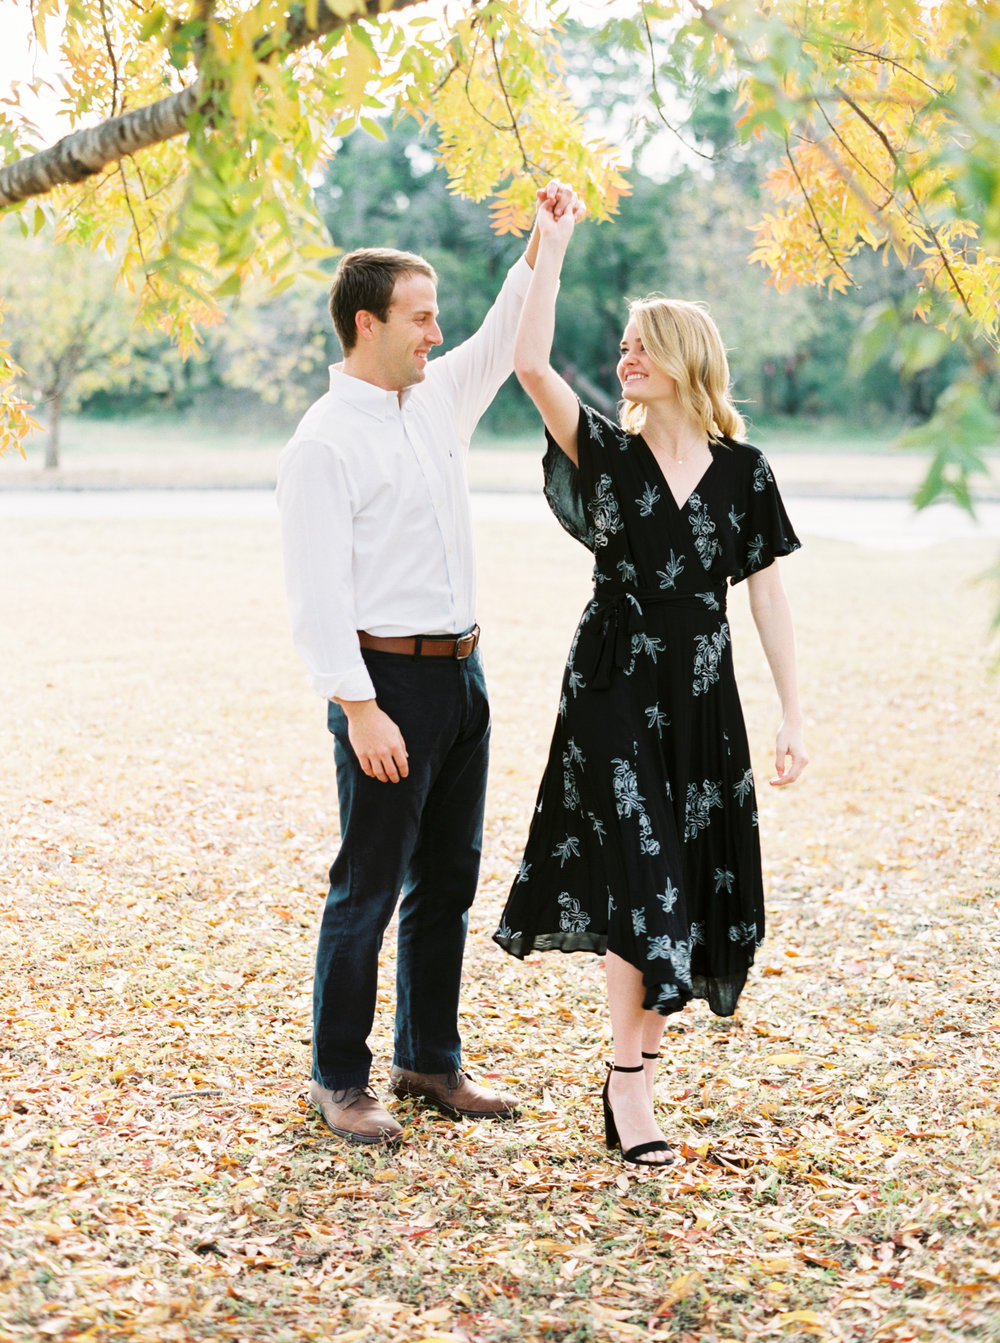 Engagement Session Outfits-72.jpg